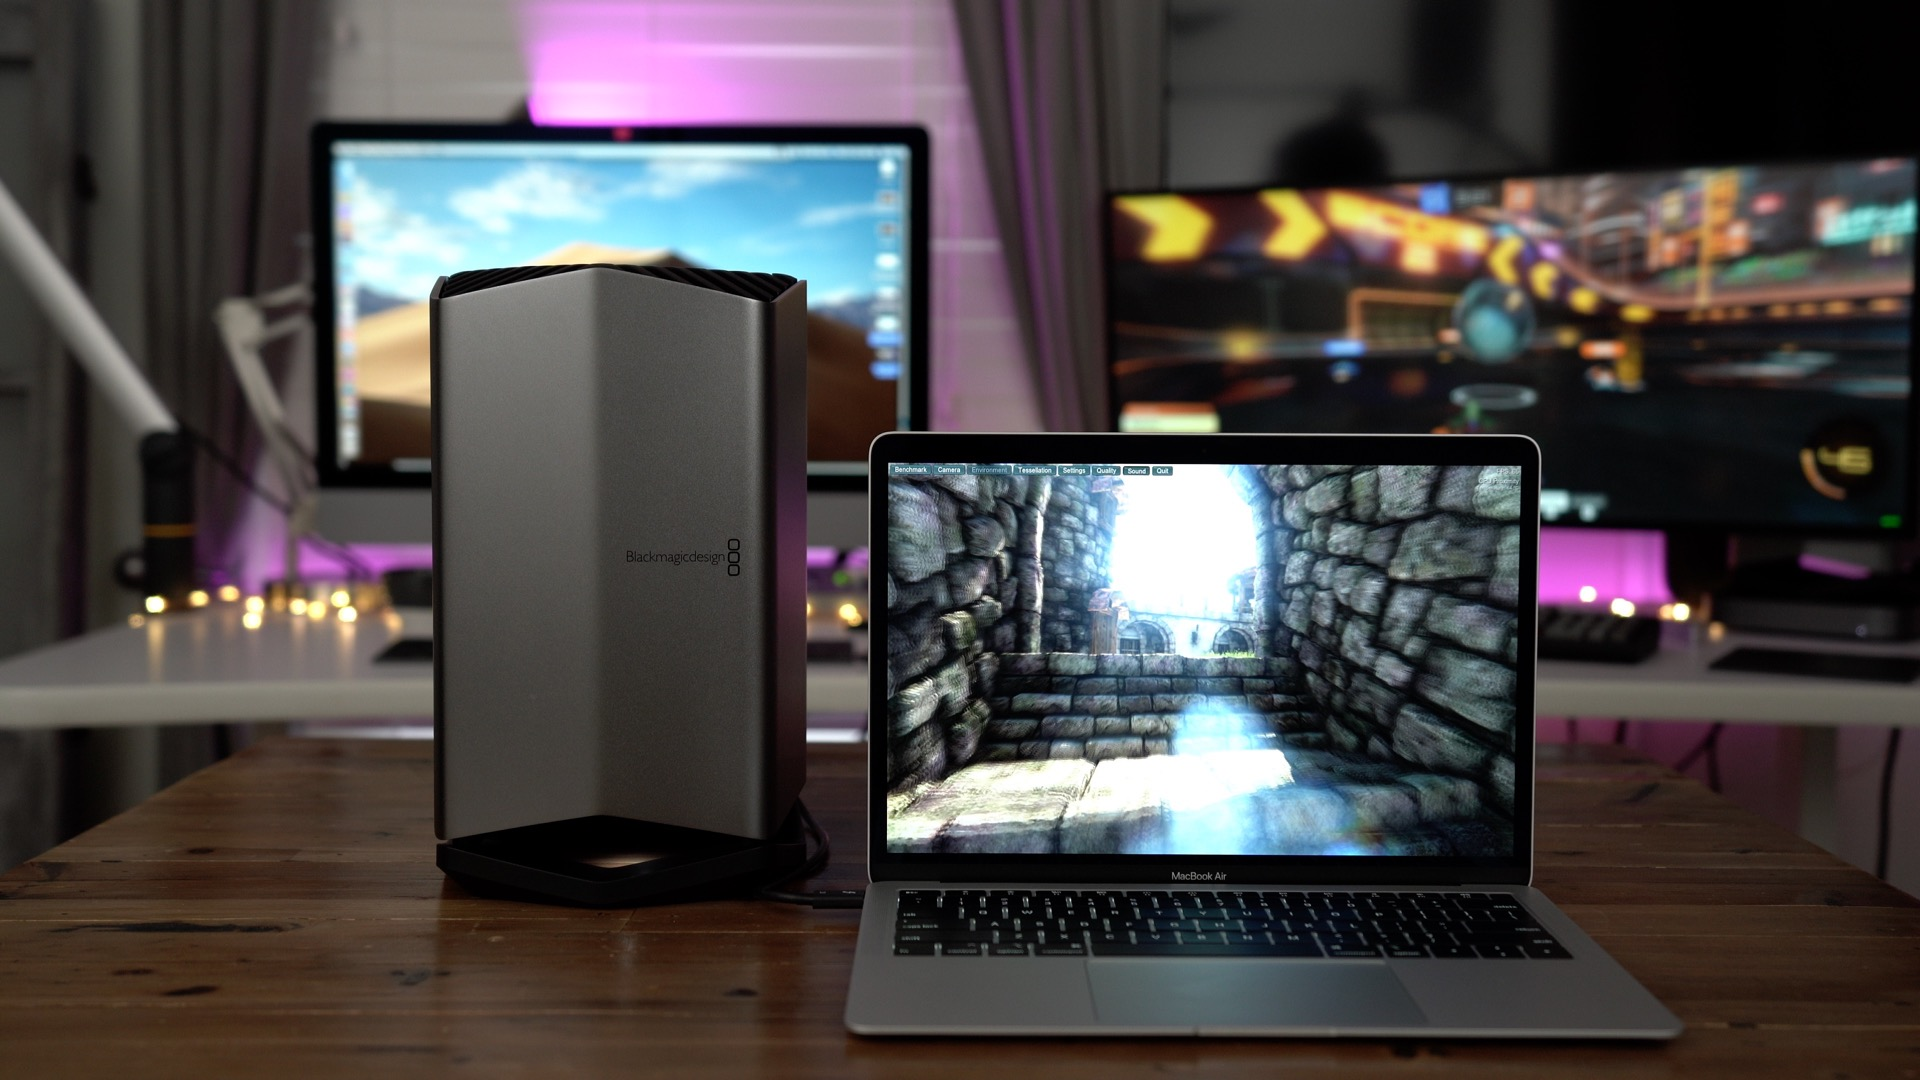 Review: Blackmagic eGPU Pro is more powerful and capable